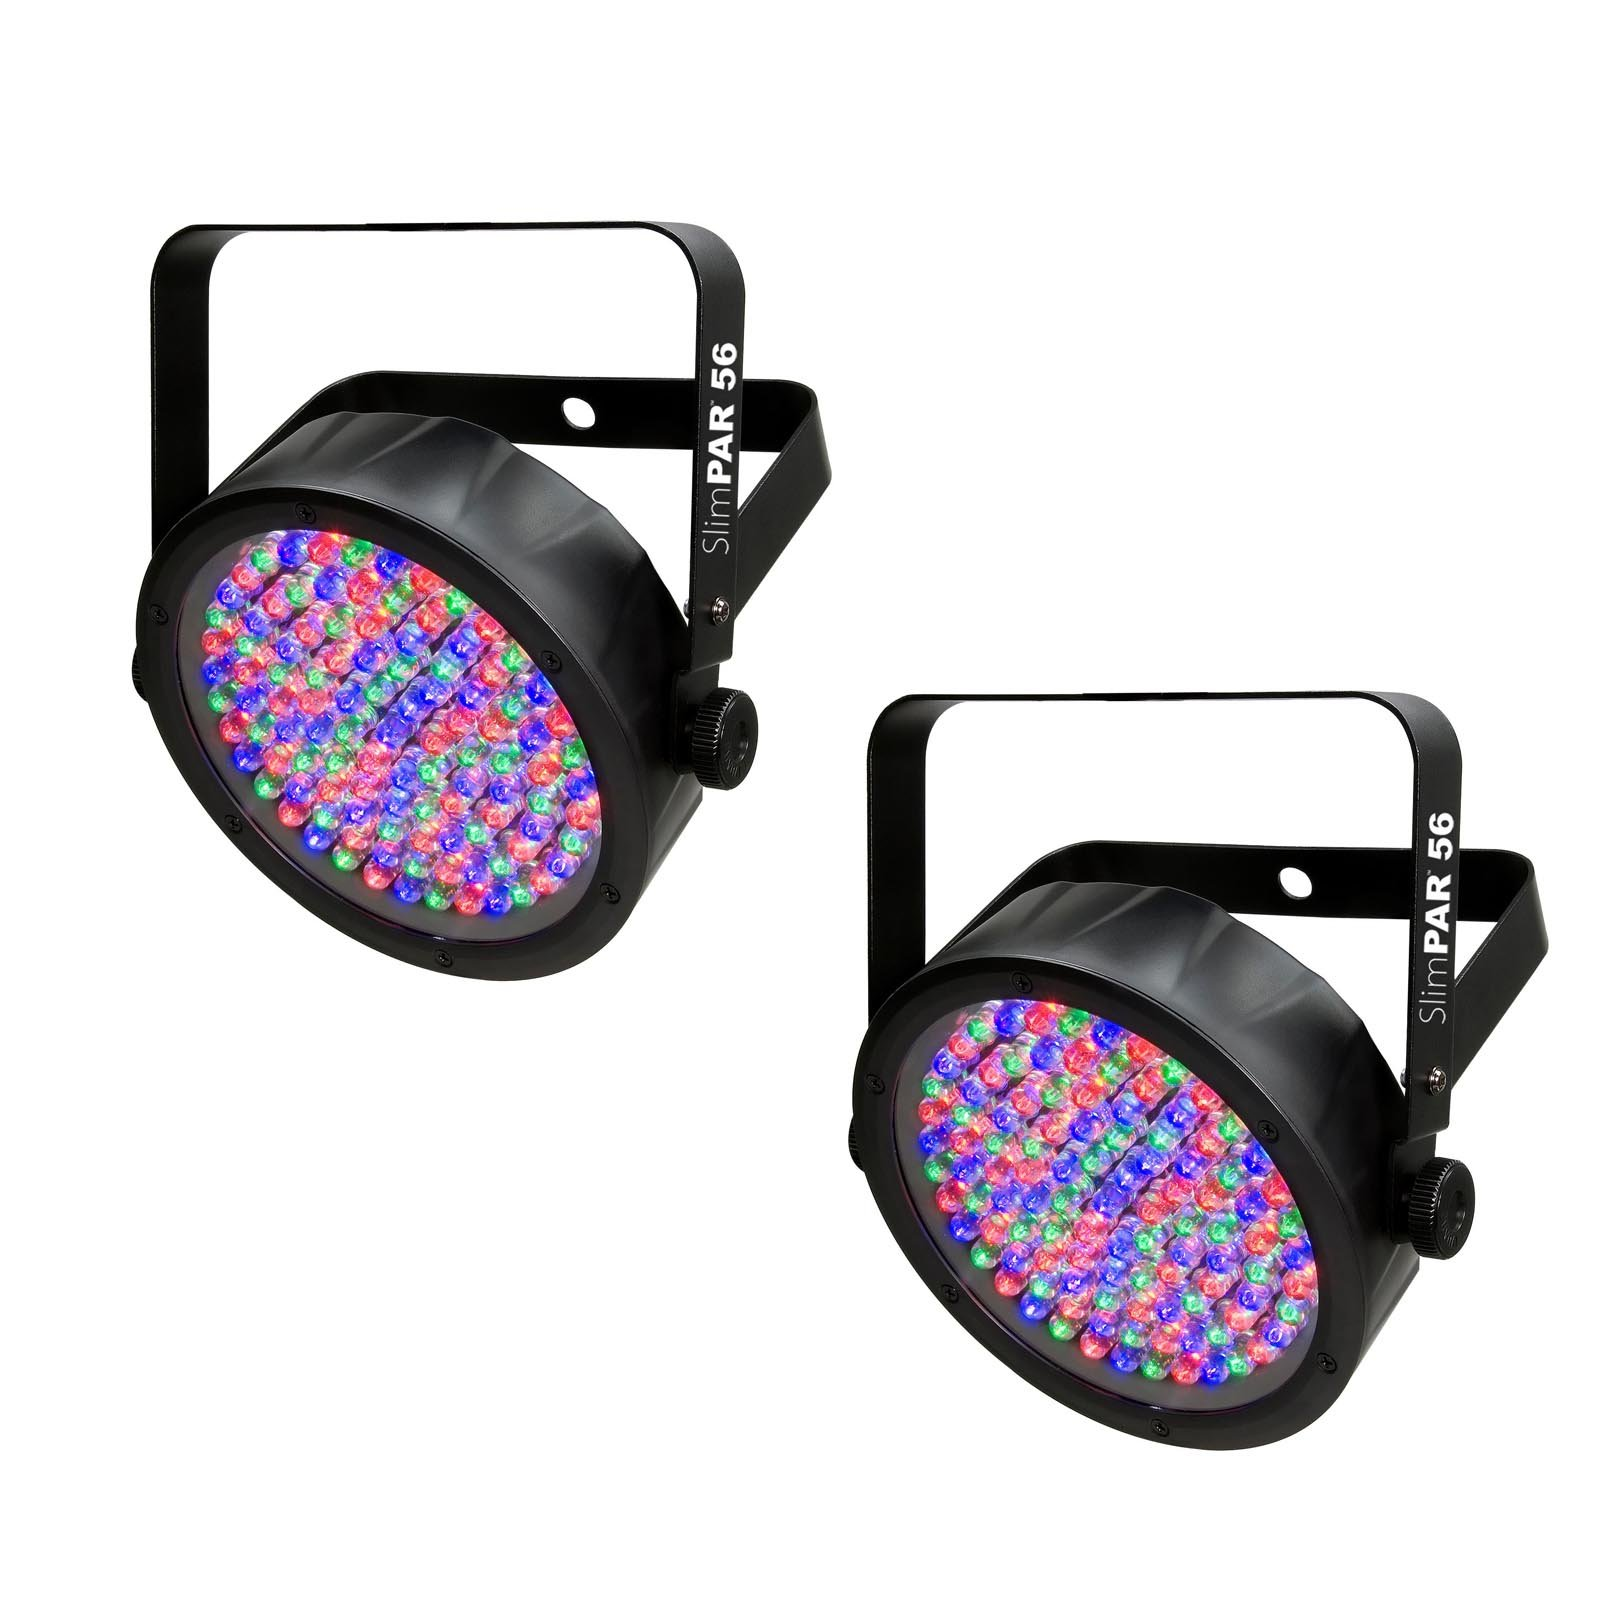 (2) Chauvet DJ SlimPar 56 LED DMX Slim Par Can Stage Pro RGB Lighting Effects